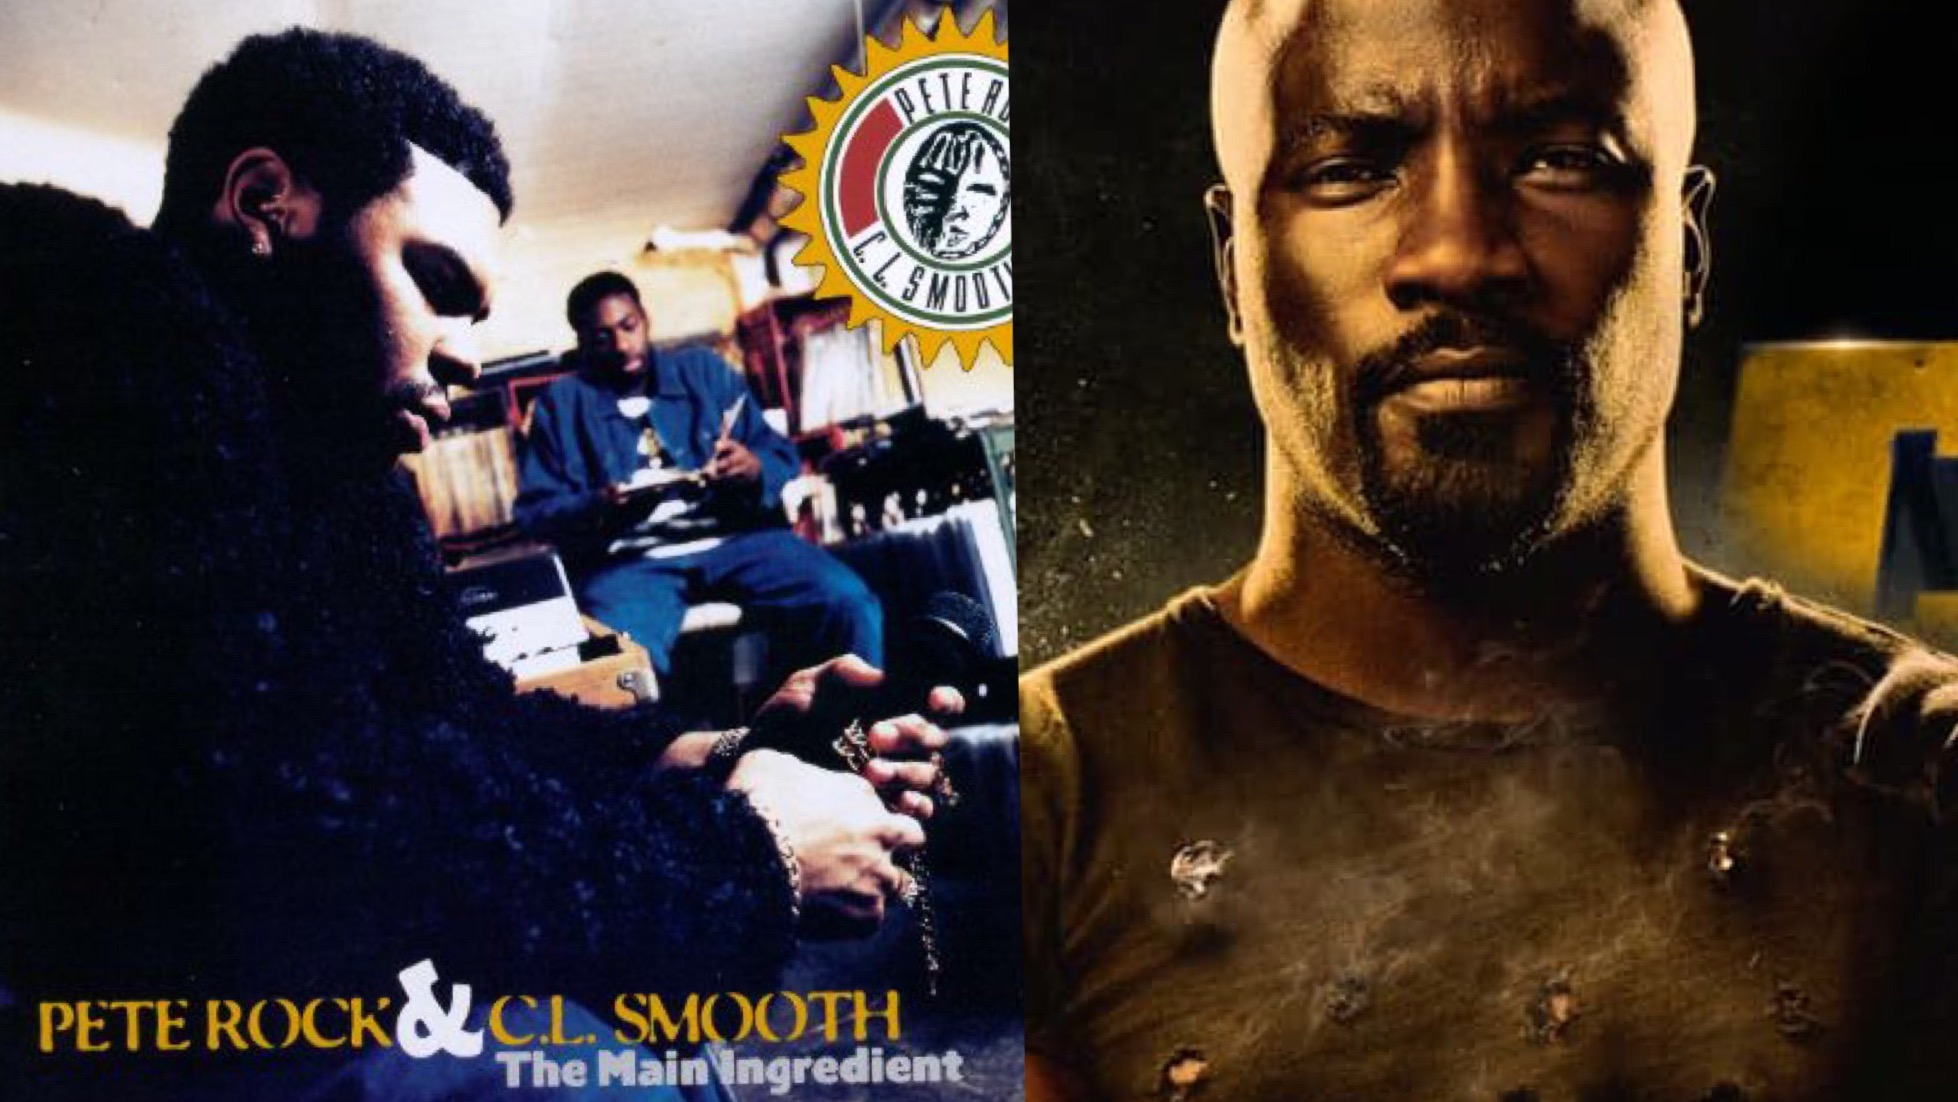 Pete Rock CL Smooth Luke Cage